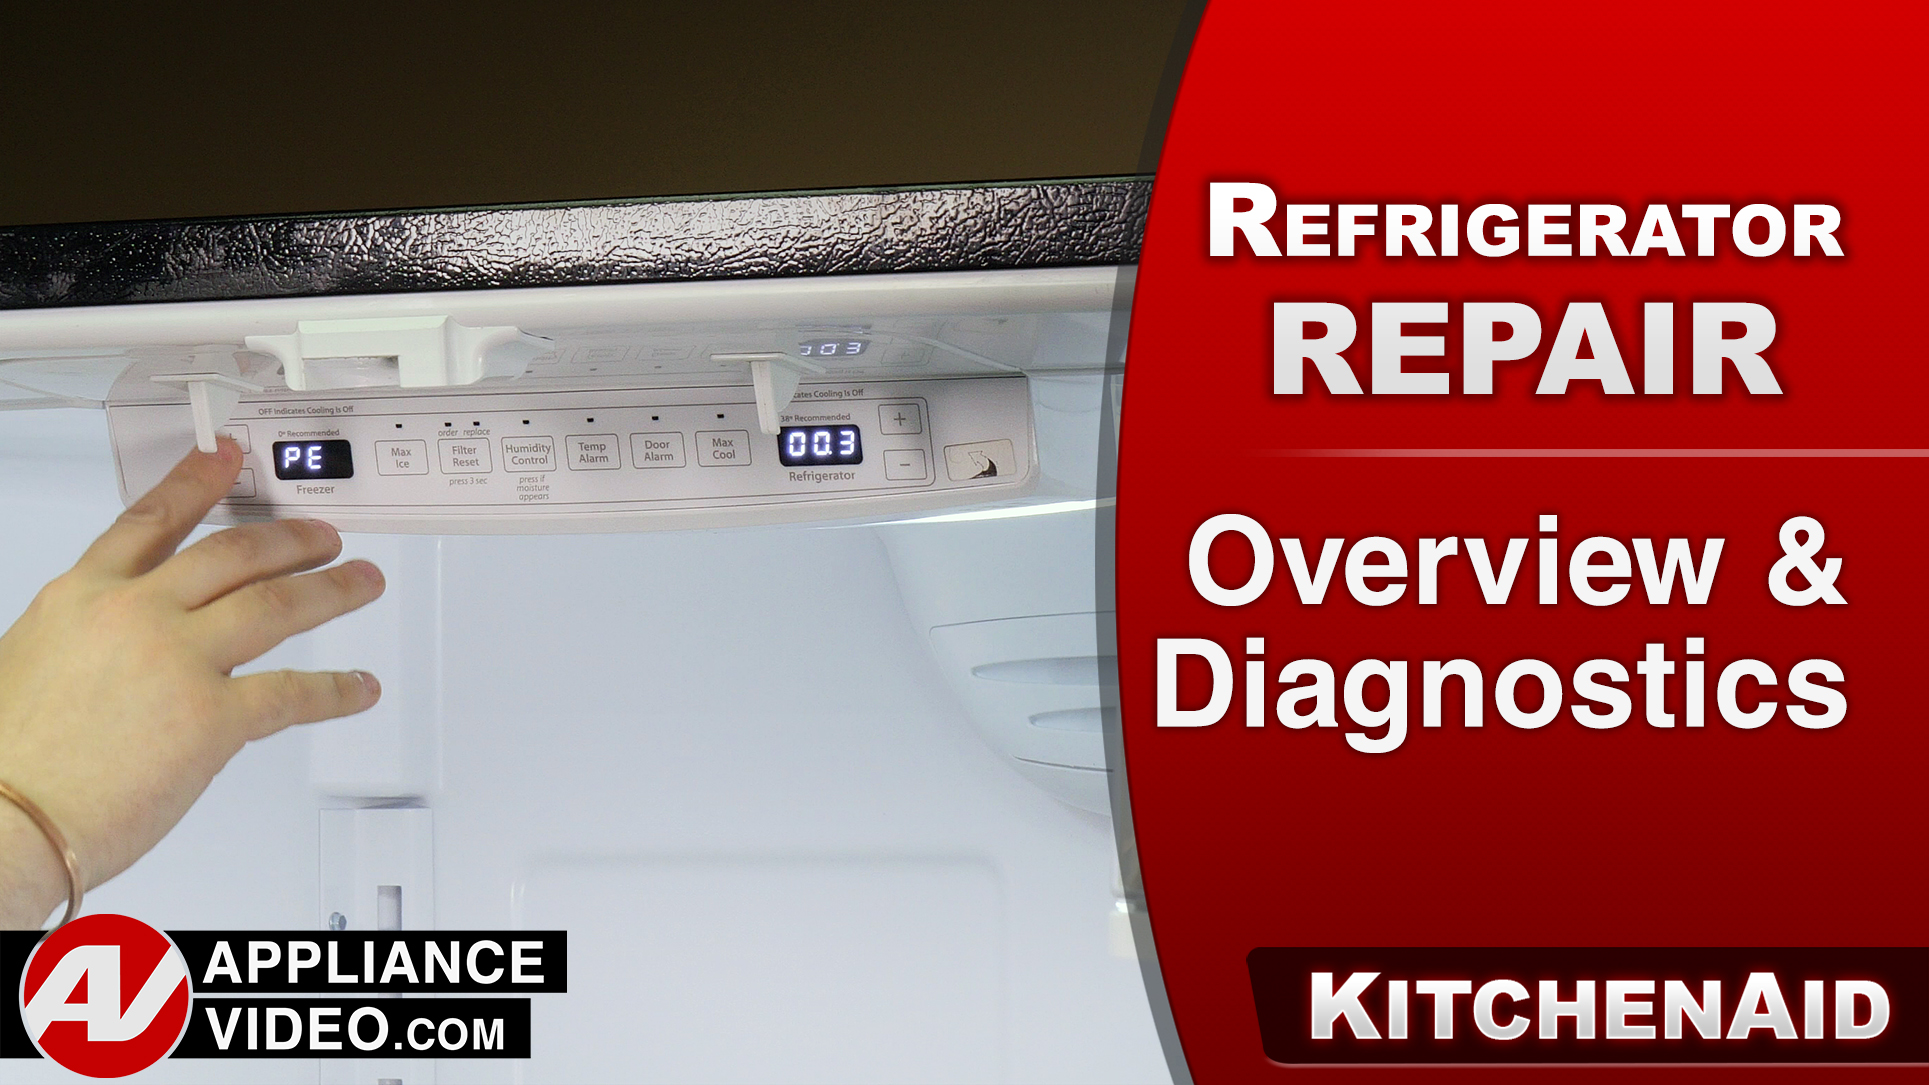 KitchenAid KRFF305EBS Refrigerator – Overview / Diagnostics